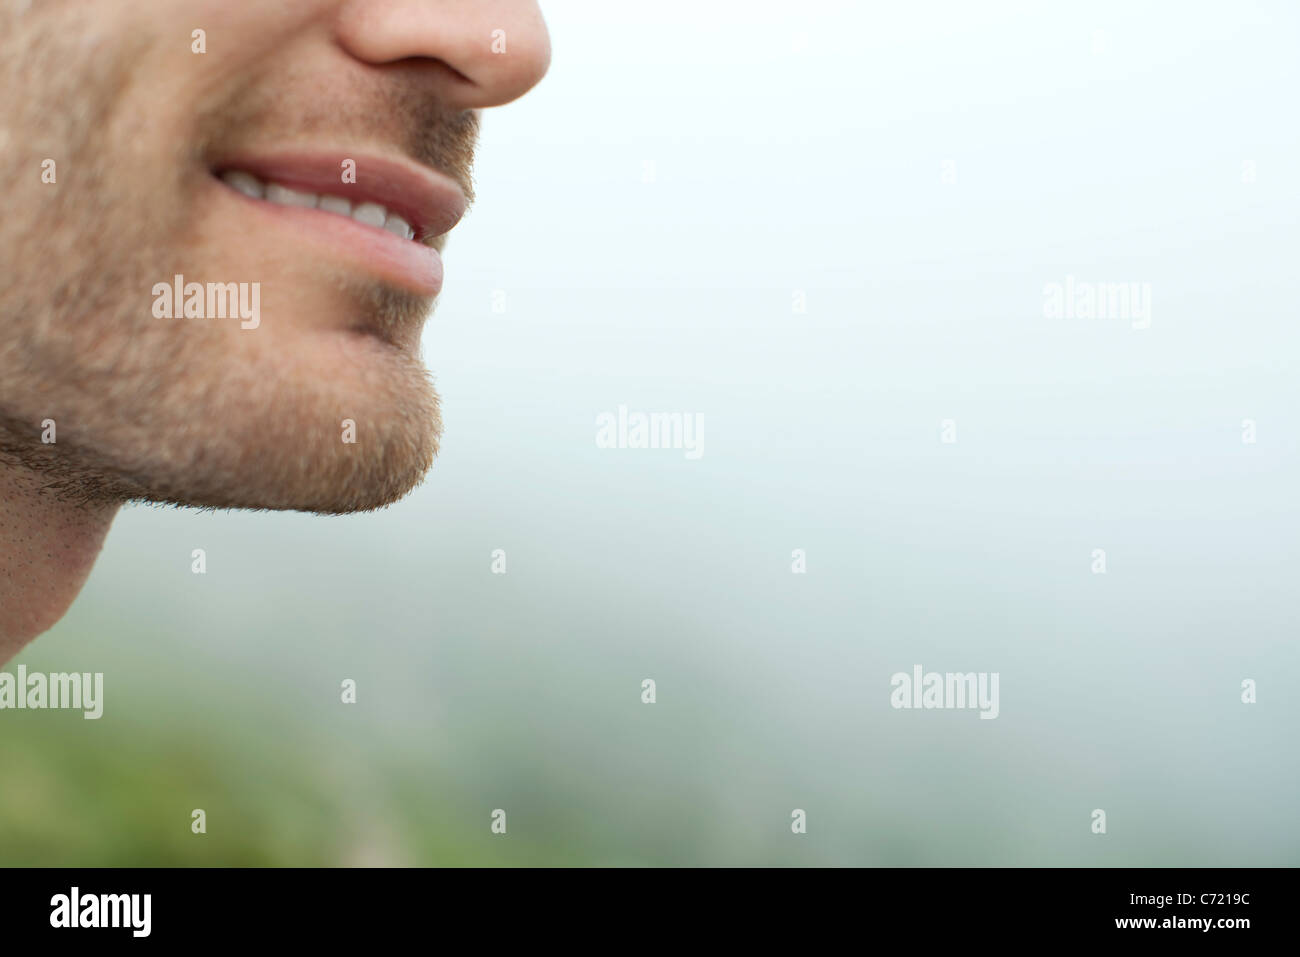 Man's mouth and chin, close-up, cropped - Stock Image